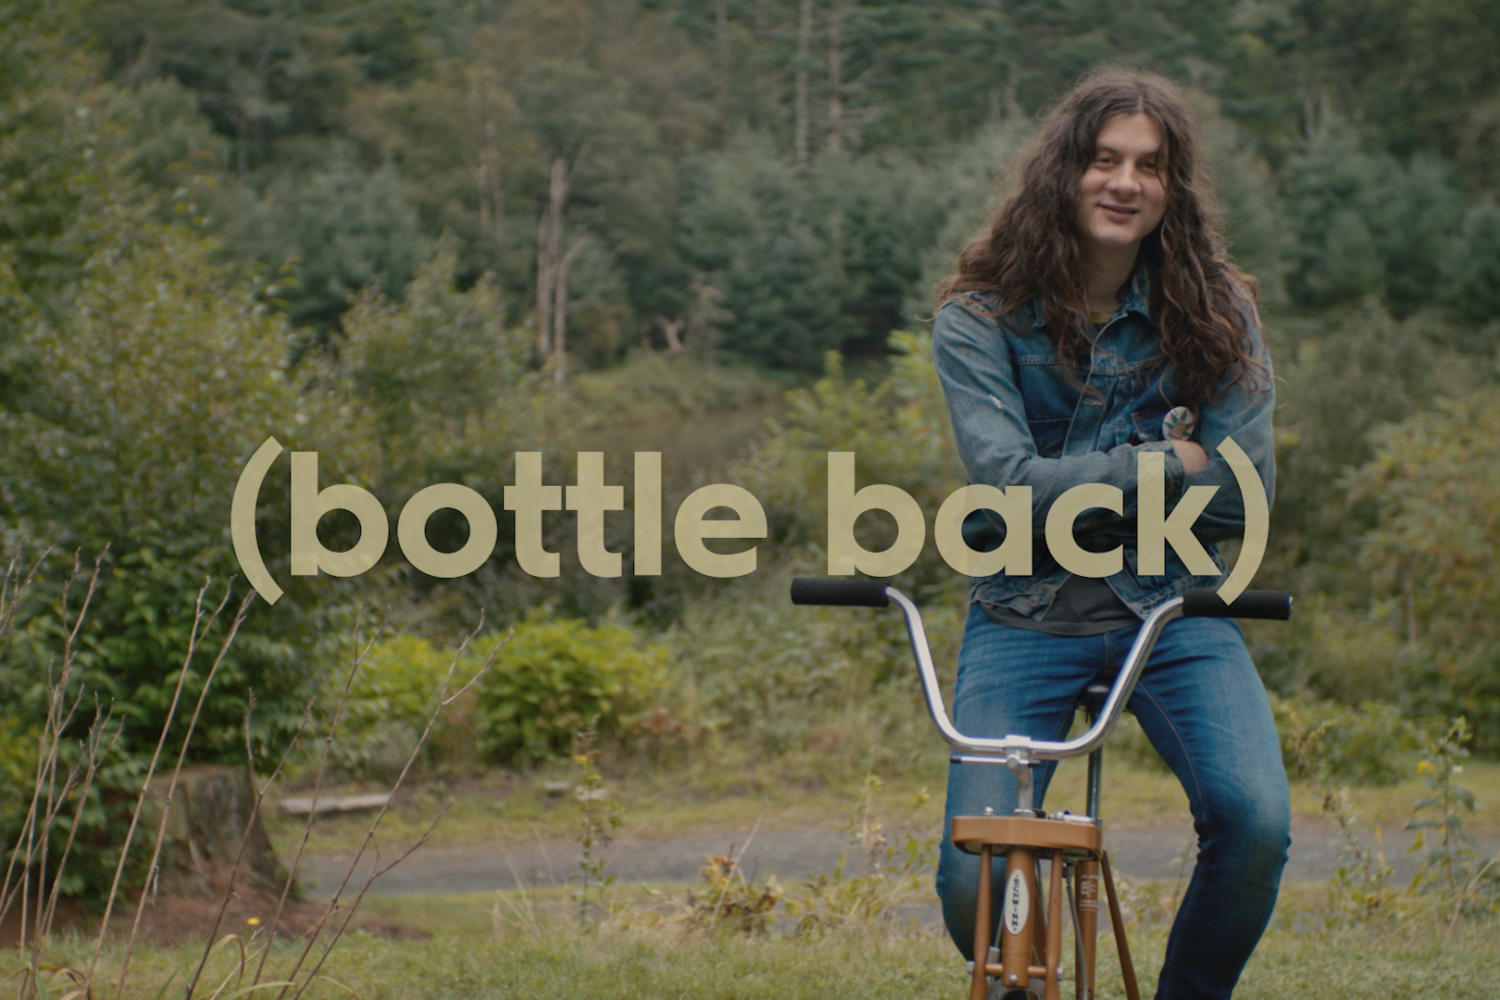 Kurt Vile unveils '(bottle back)' documentary